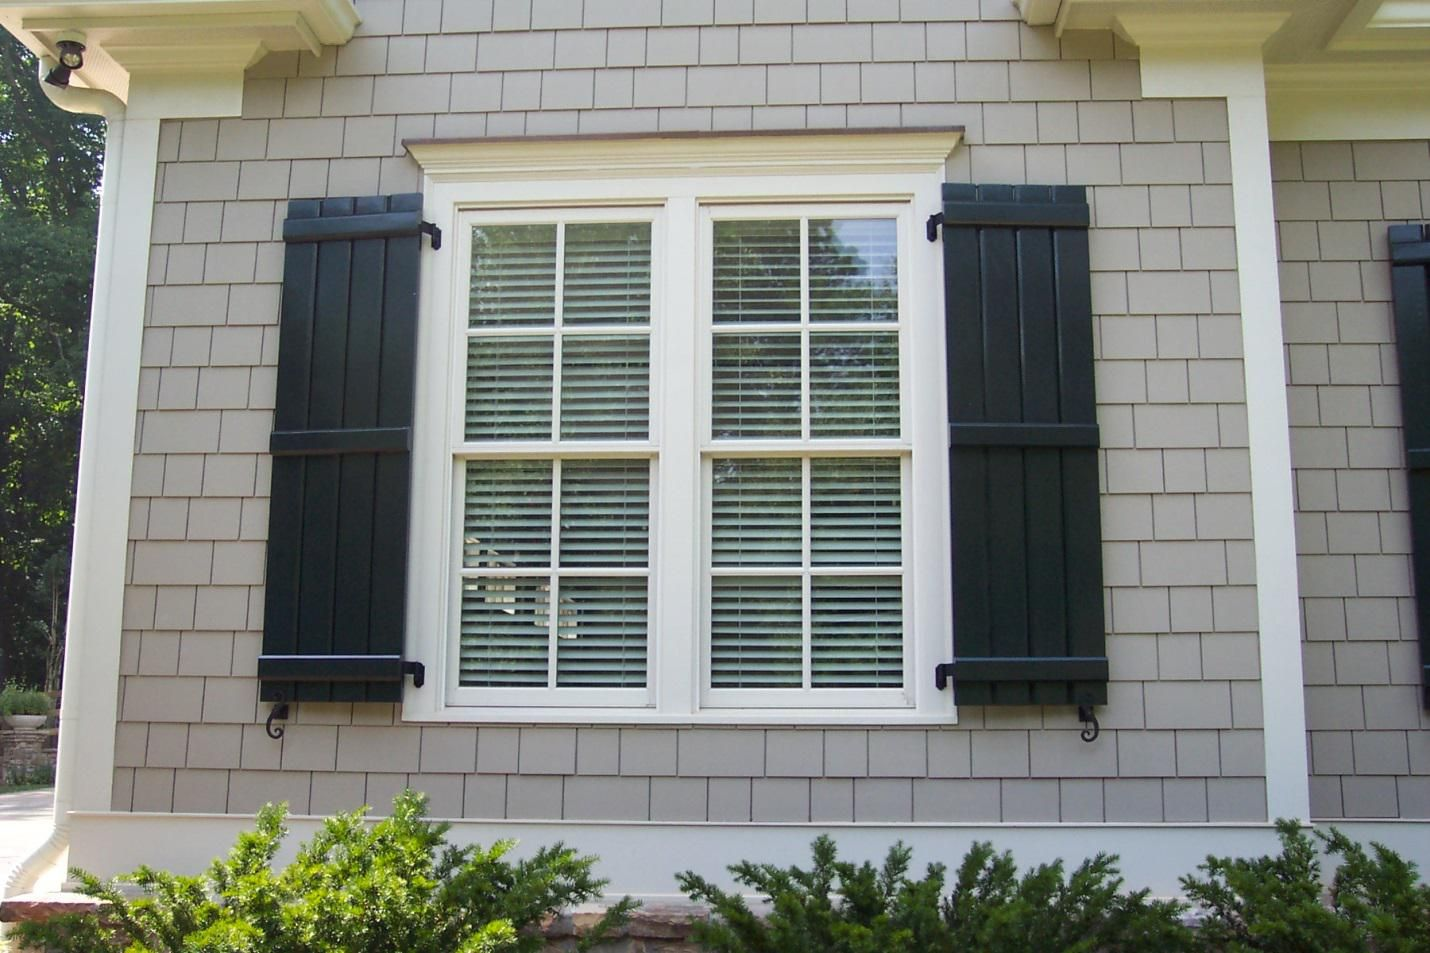 Exterior Shutters Add Value And Increase The Appeal Of Your House Shutters Exterior Wood Shutters Exterior Window Shutters Exterior